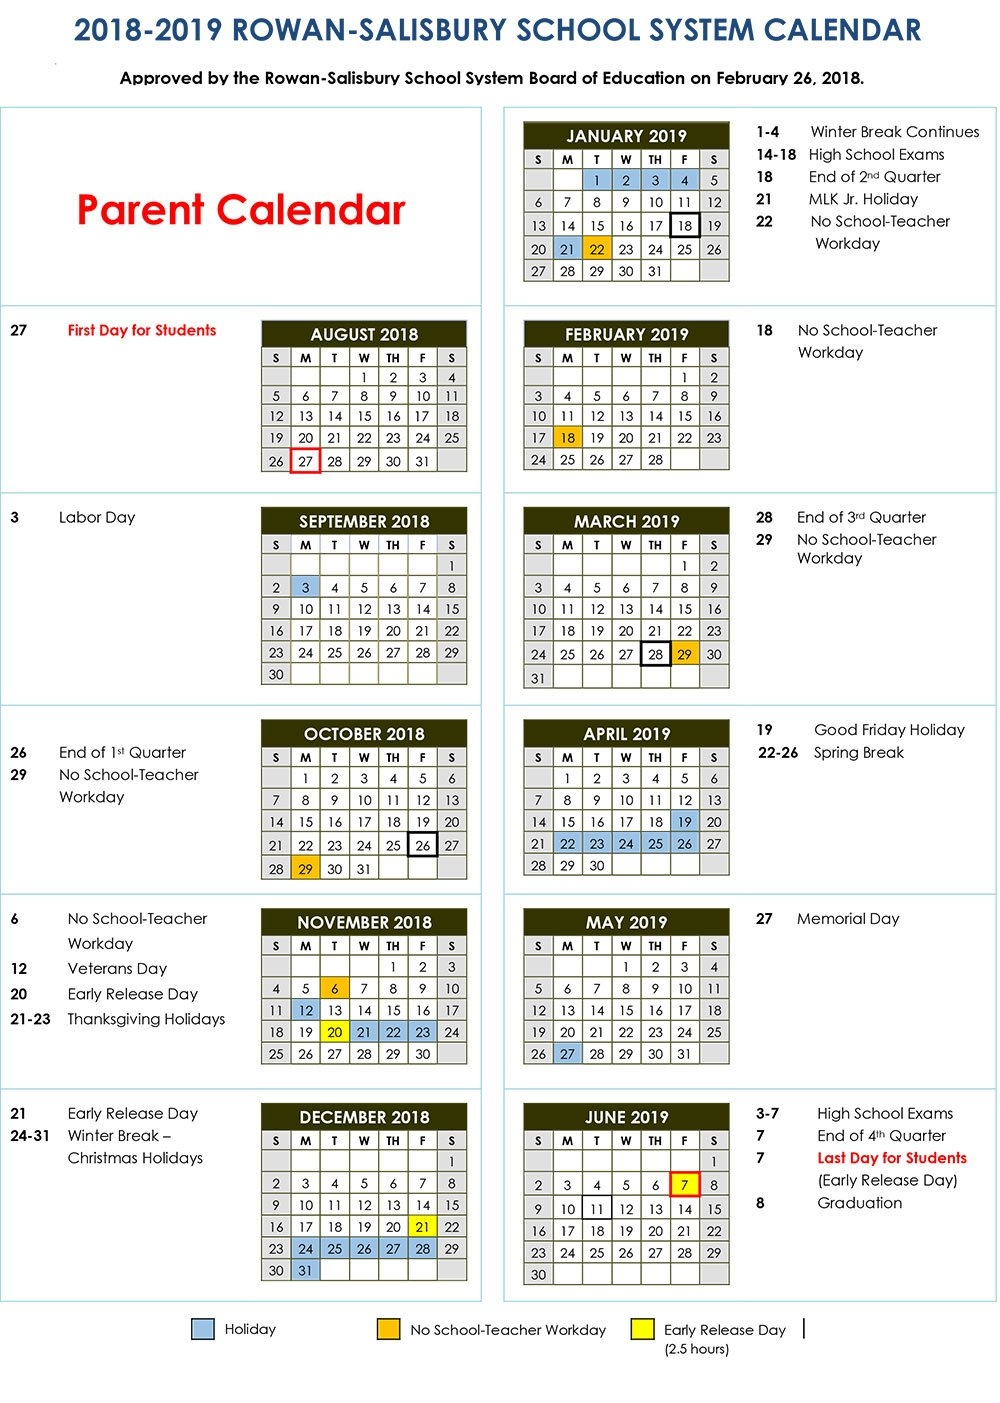 2018-2019 Calendars | District News K State Calendar Spring 2019